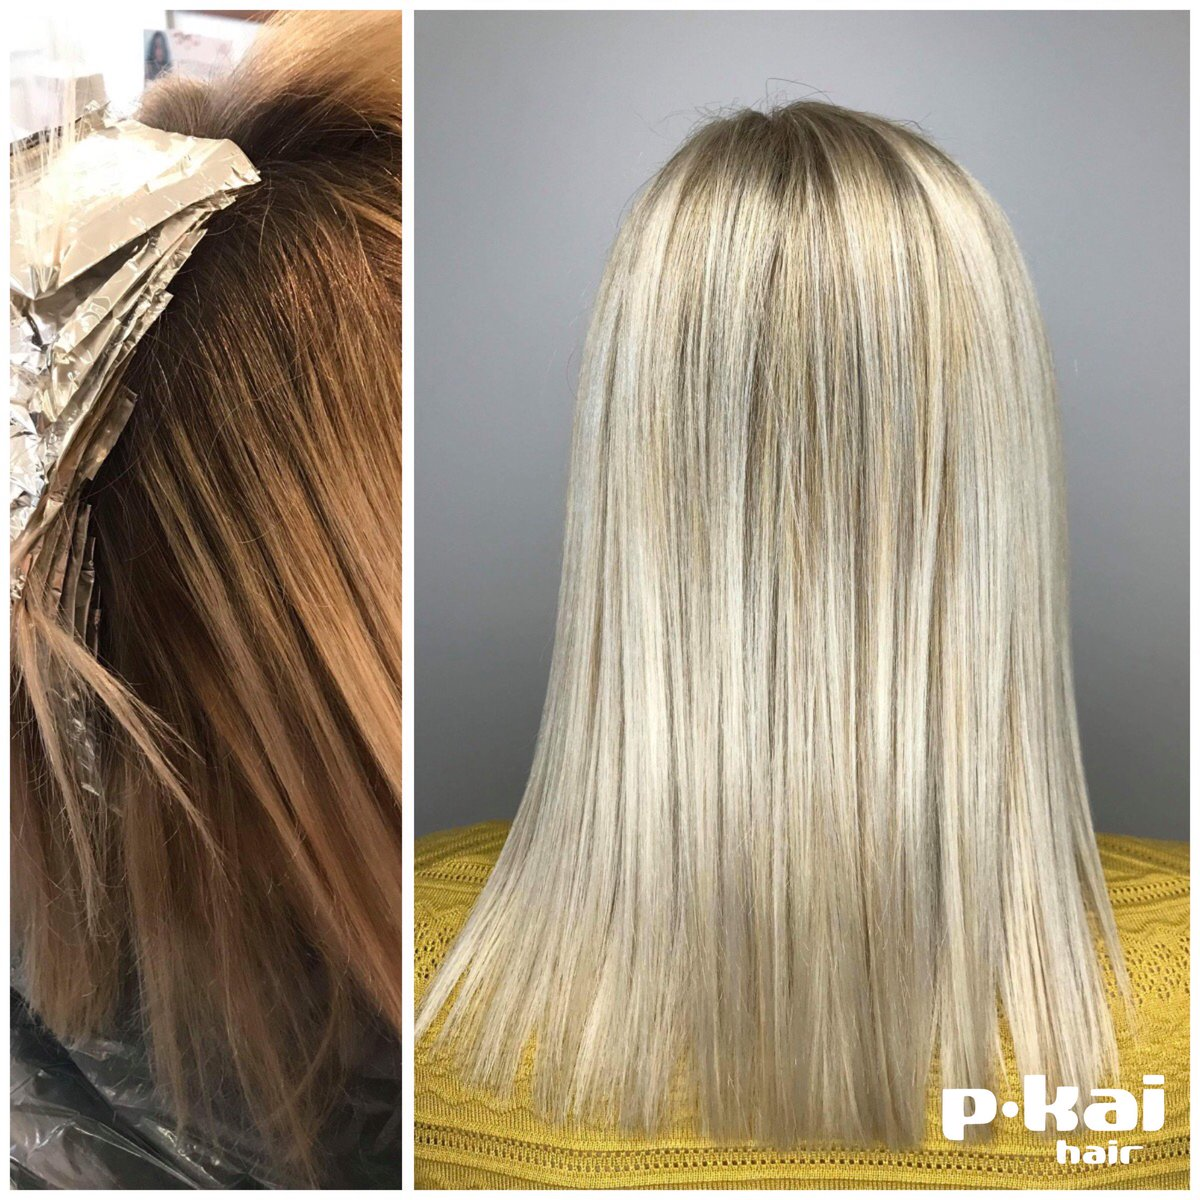 Pkai Hair On Twitter Full Head Of Highlights By Style Director